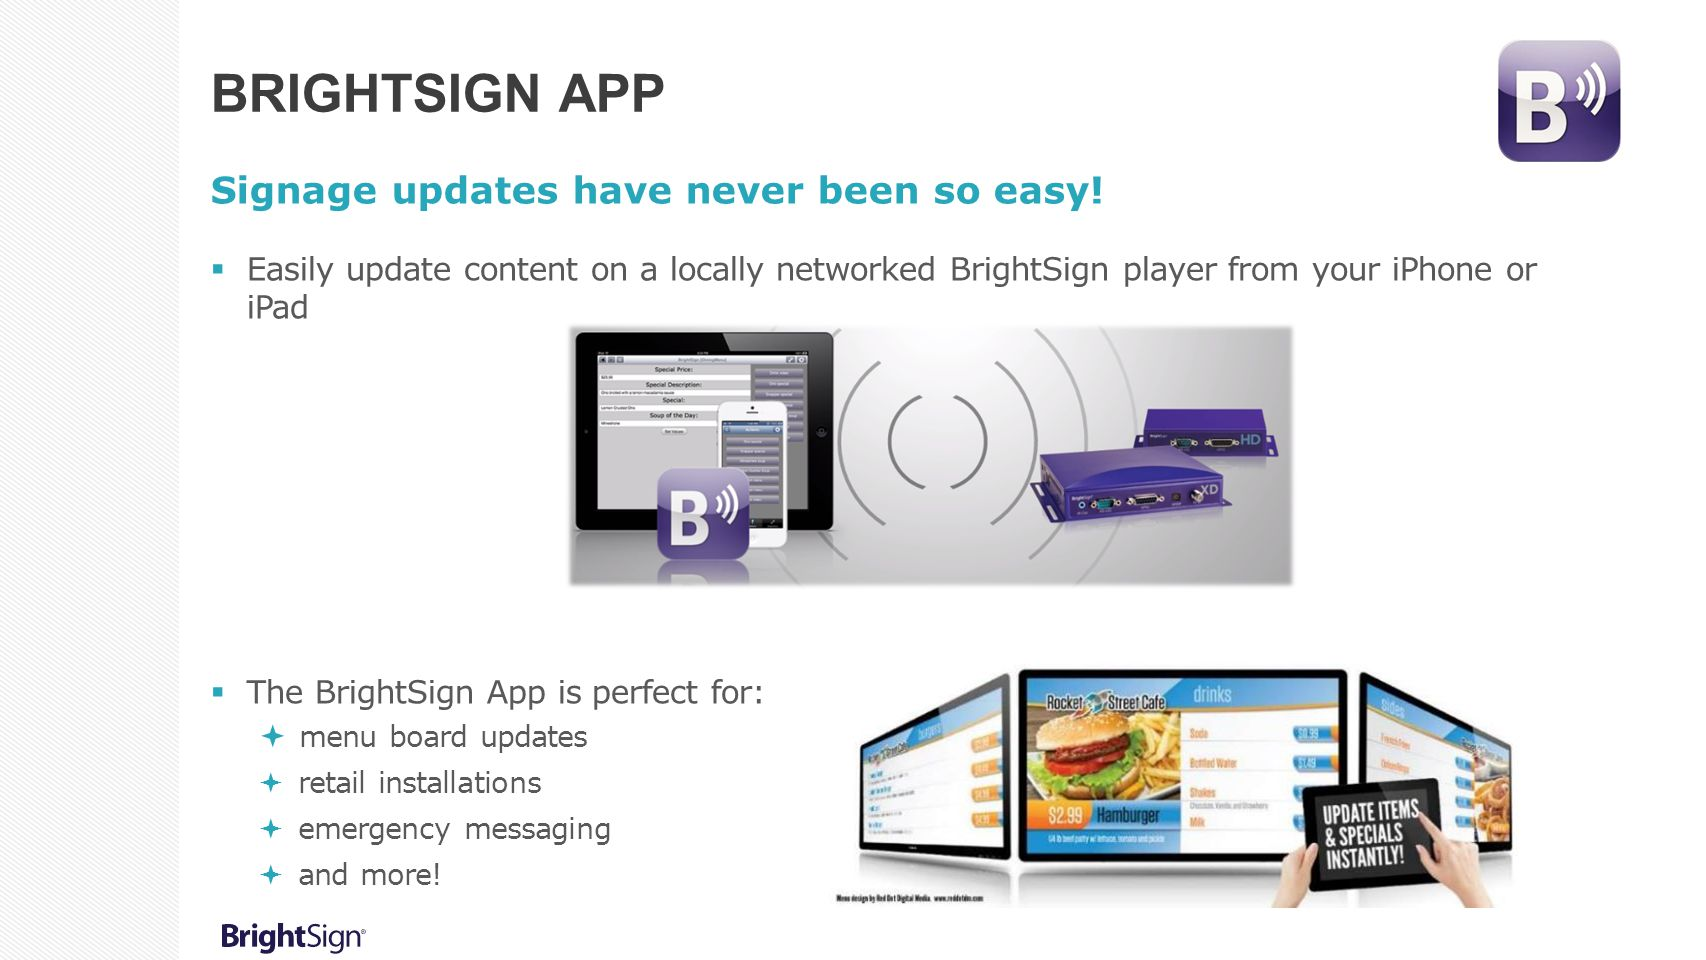 BrightSign App Signage updates have never been so easy!